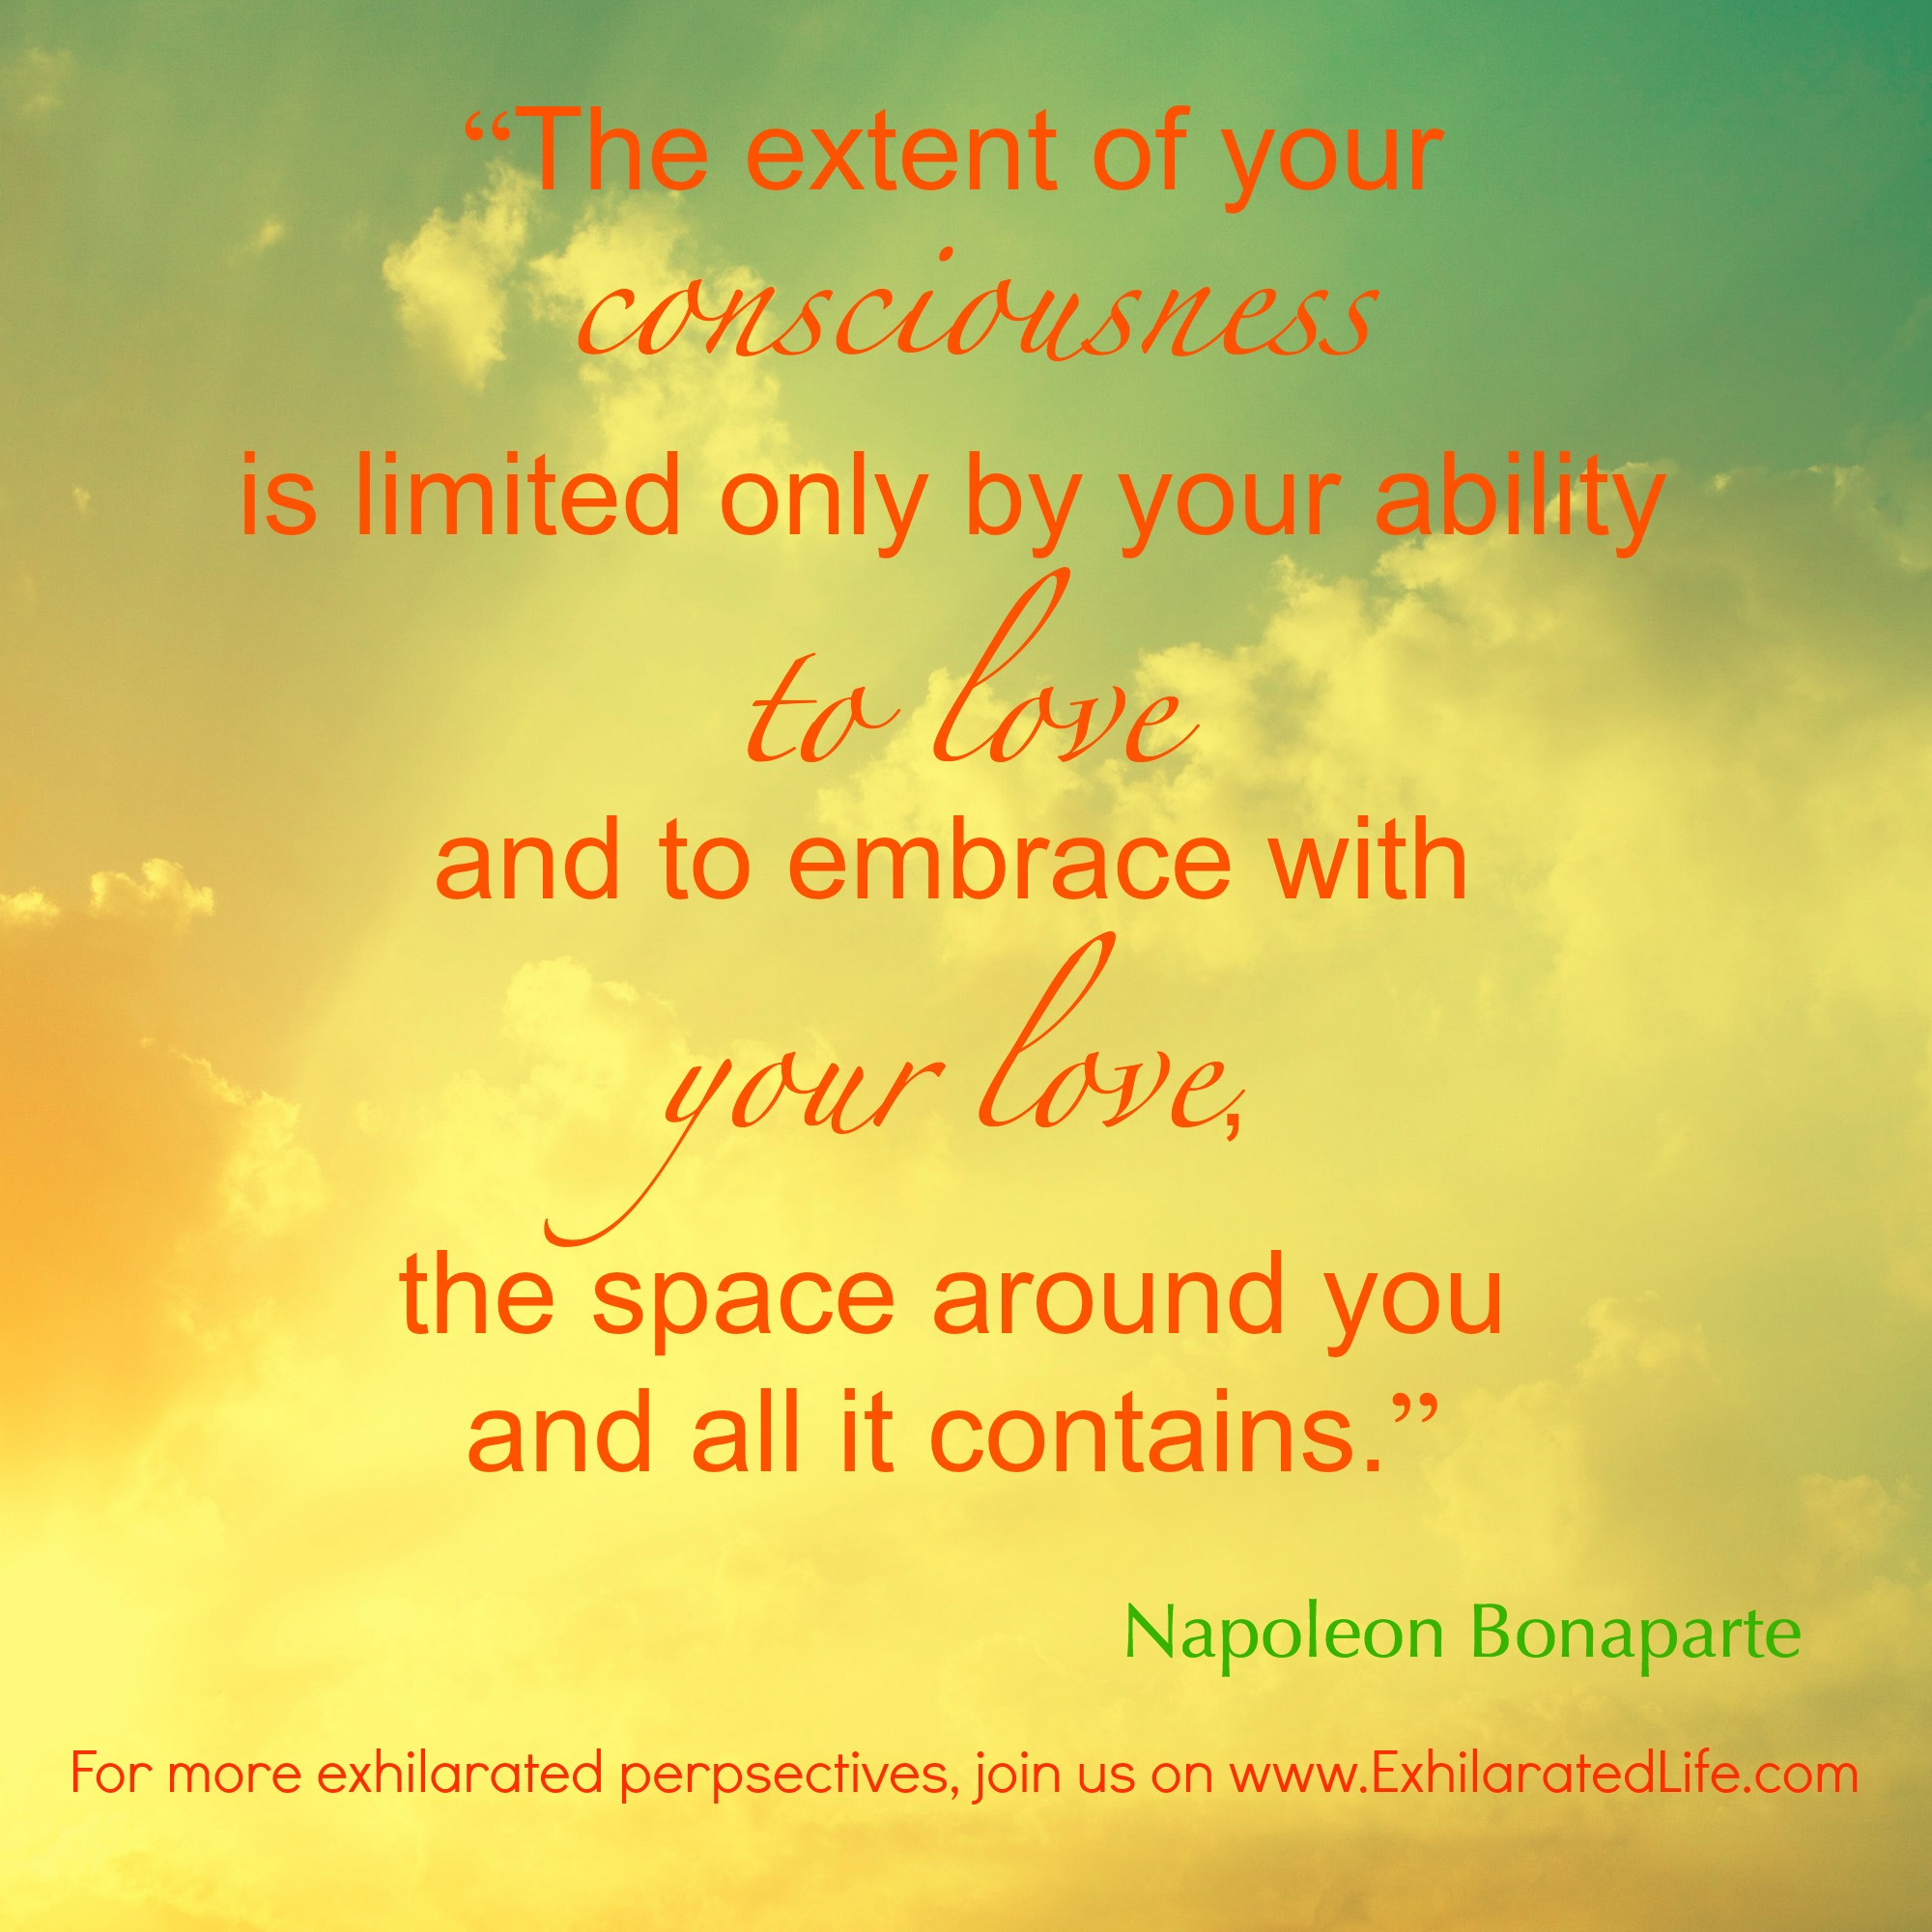 What Are the Limits of Your Love?